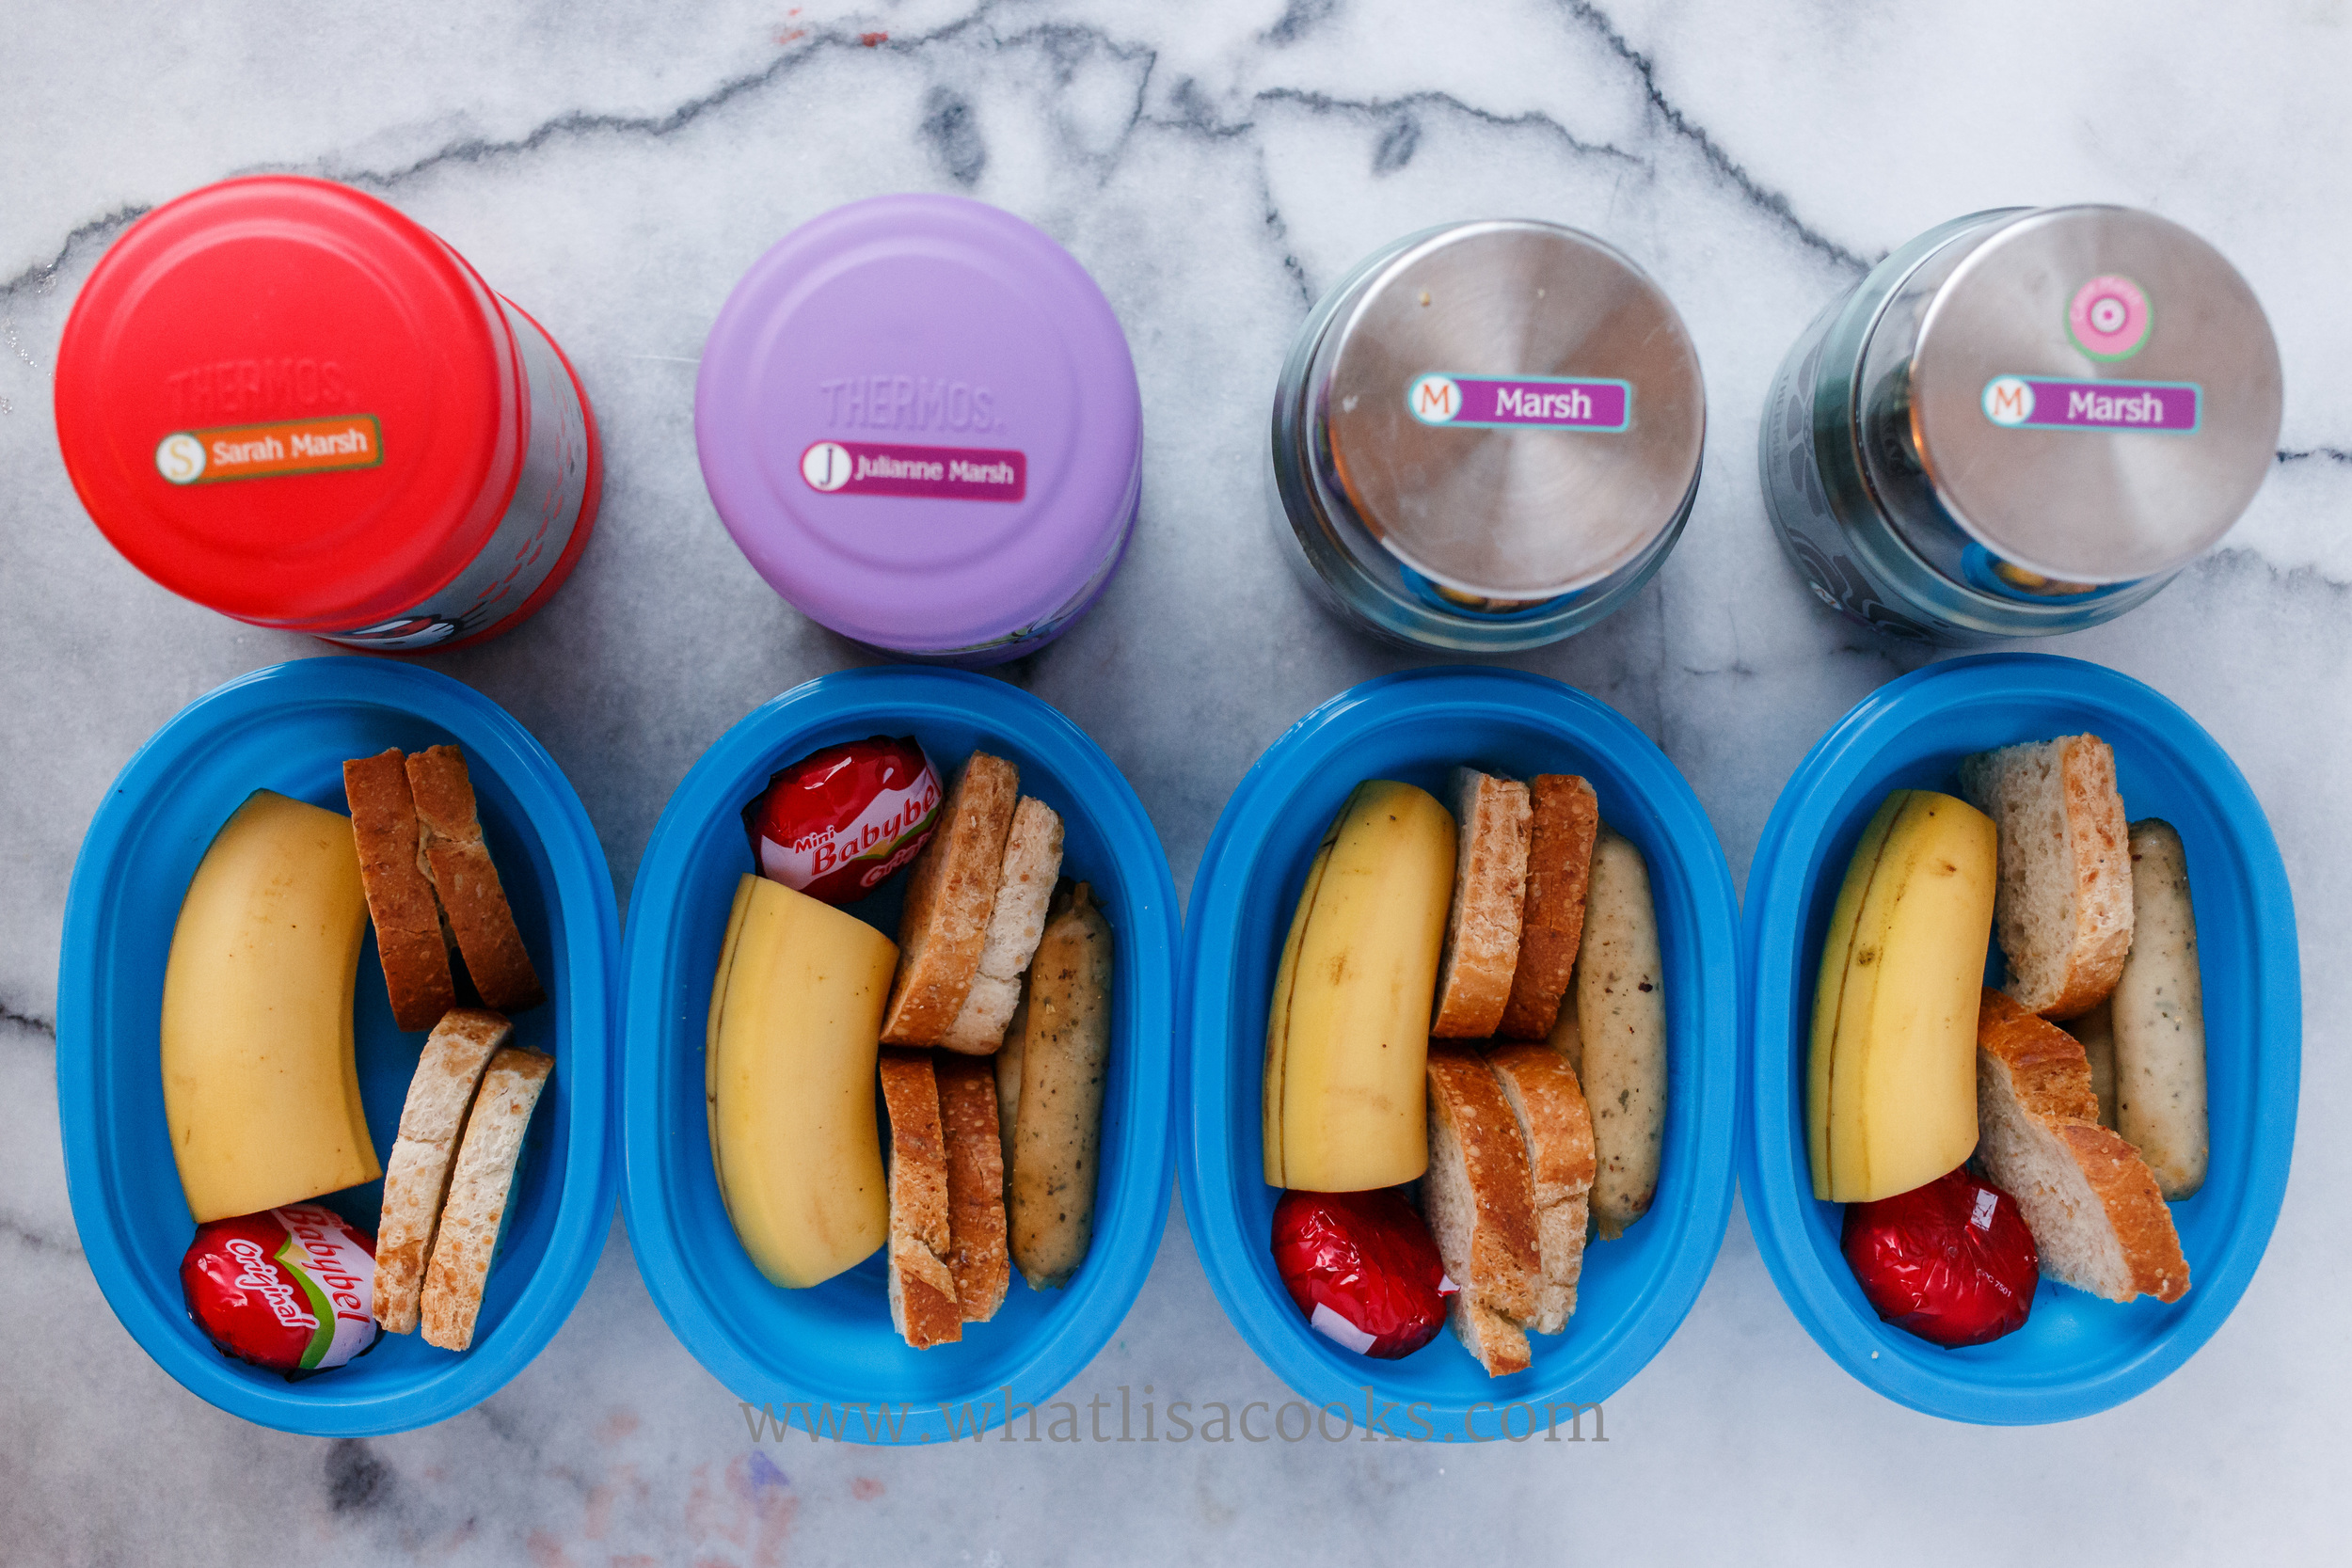 Oatmeal in the thermos containers, with toast, banana, and cheese on the side. We use these  Thermos Funtainer Food Jars  for sending hot foods to school.